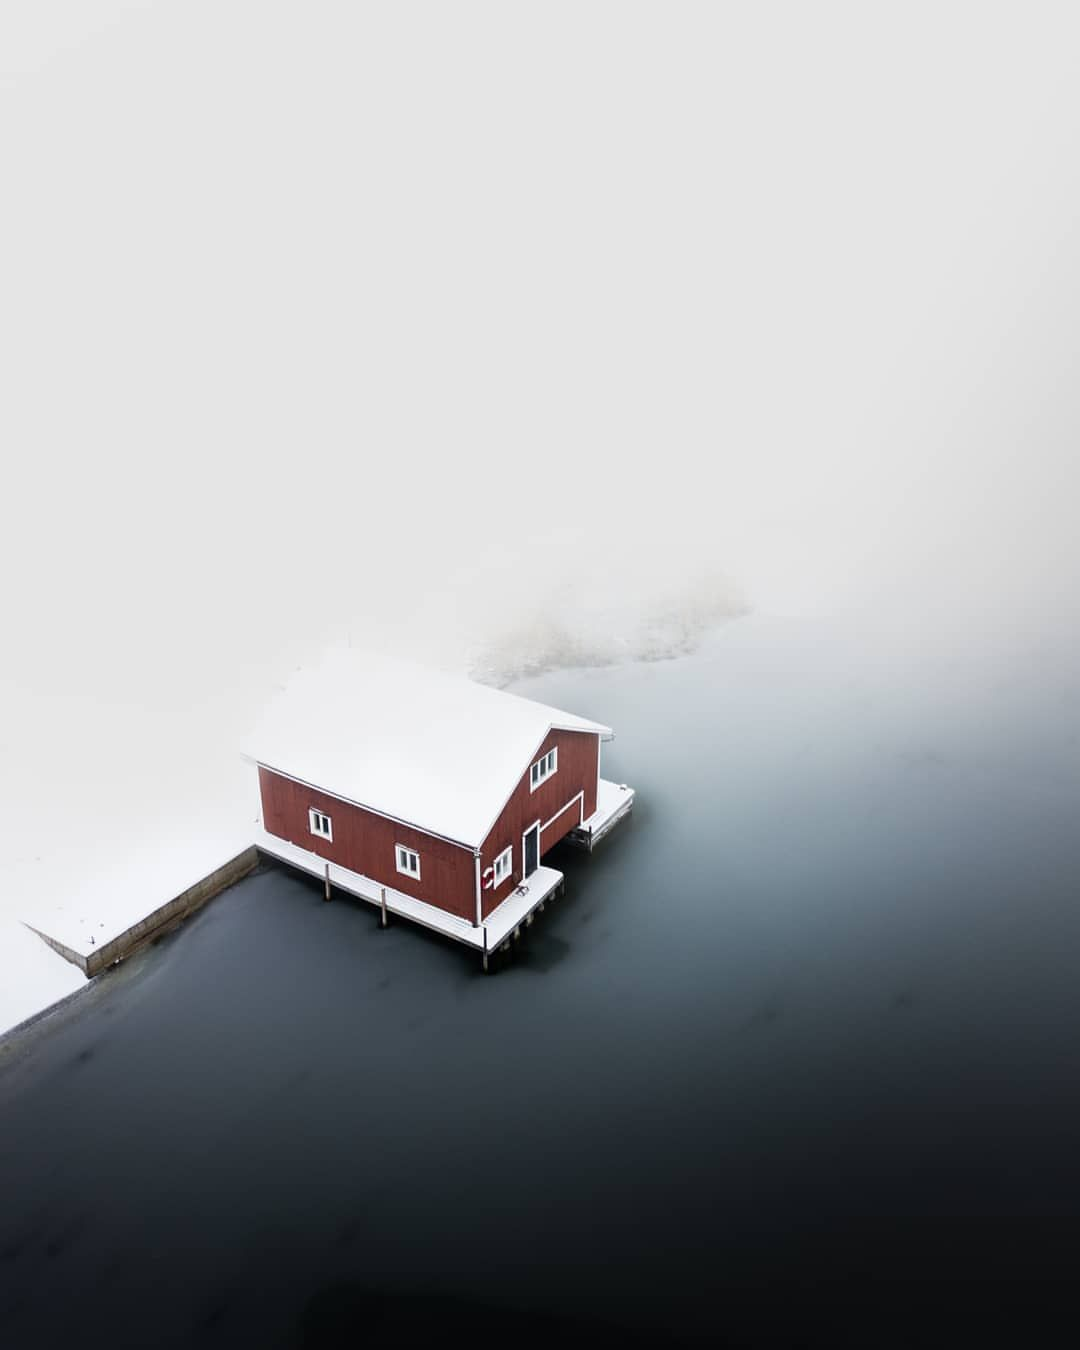 Sweden From Above Stunning Drone Photography By Viggo Lundberg